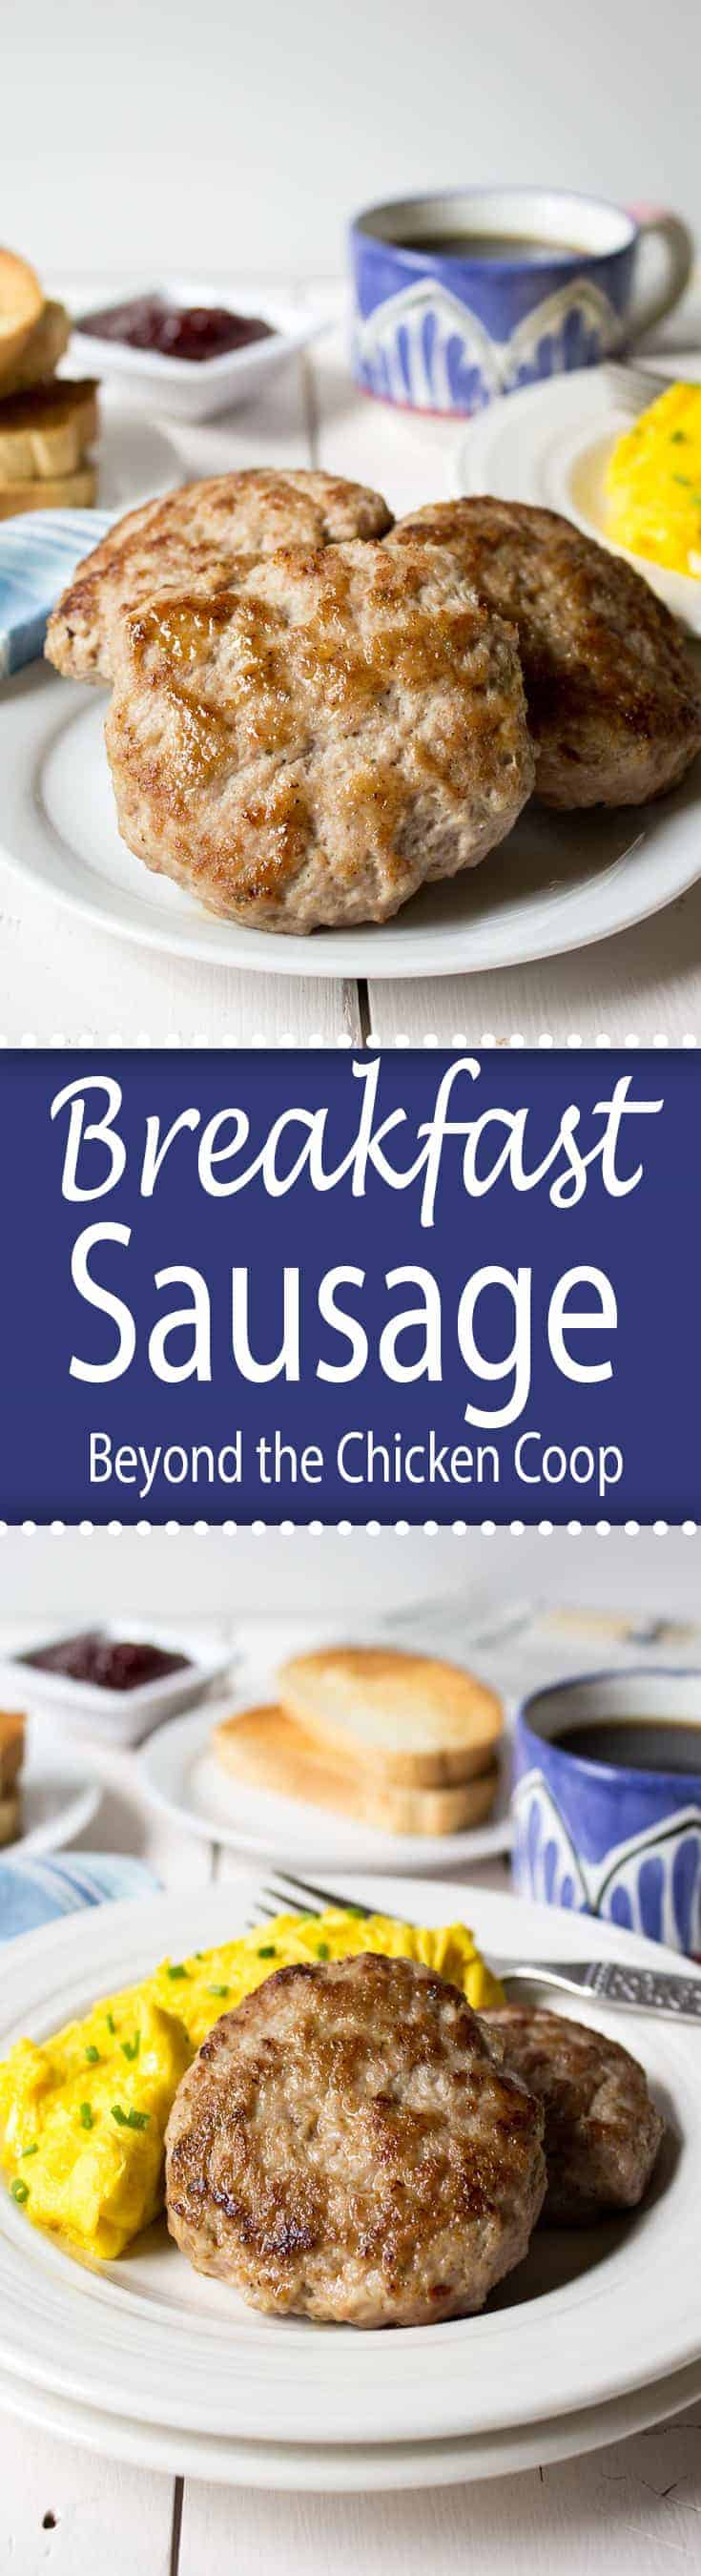 Take your breakfast to a whole new level of deliciousness with homemade breakfast sausage.